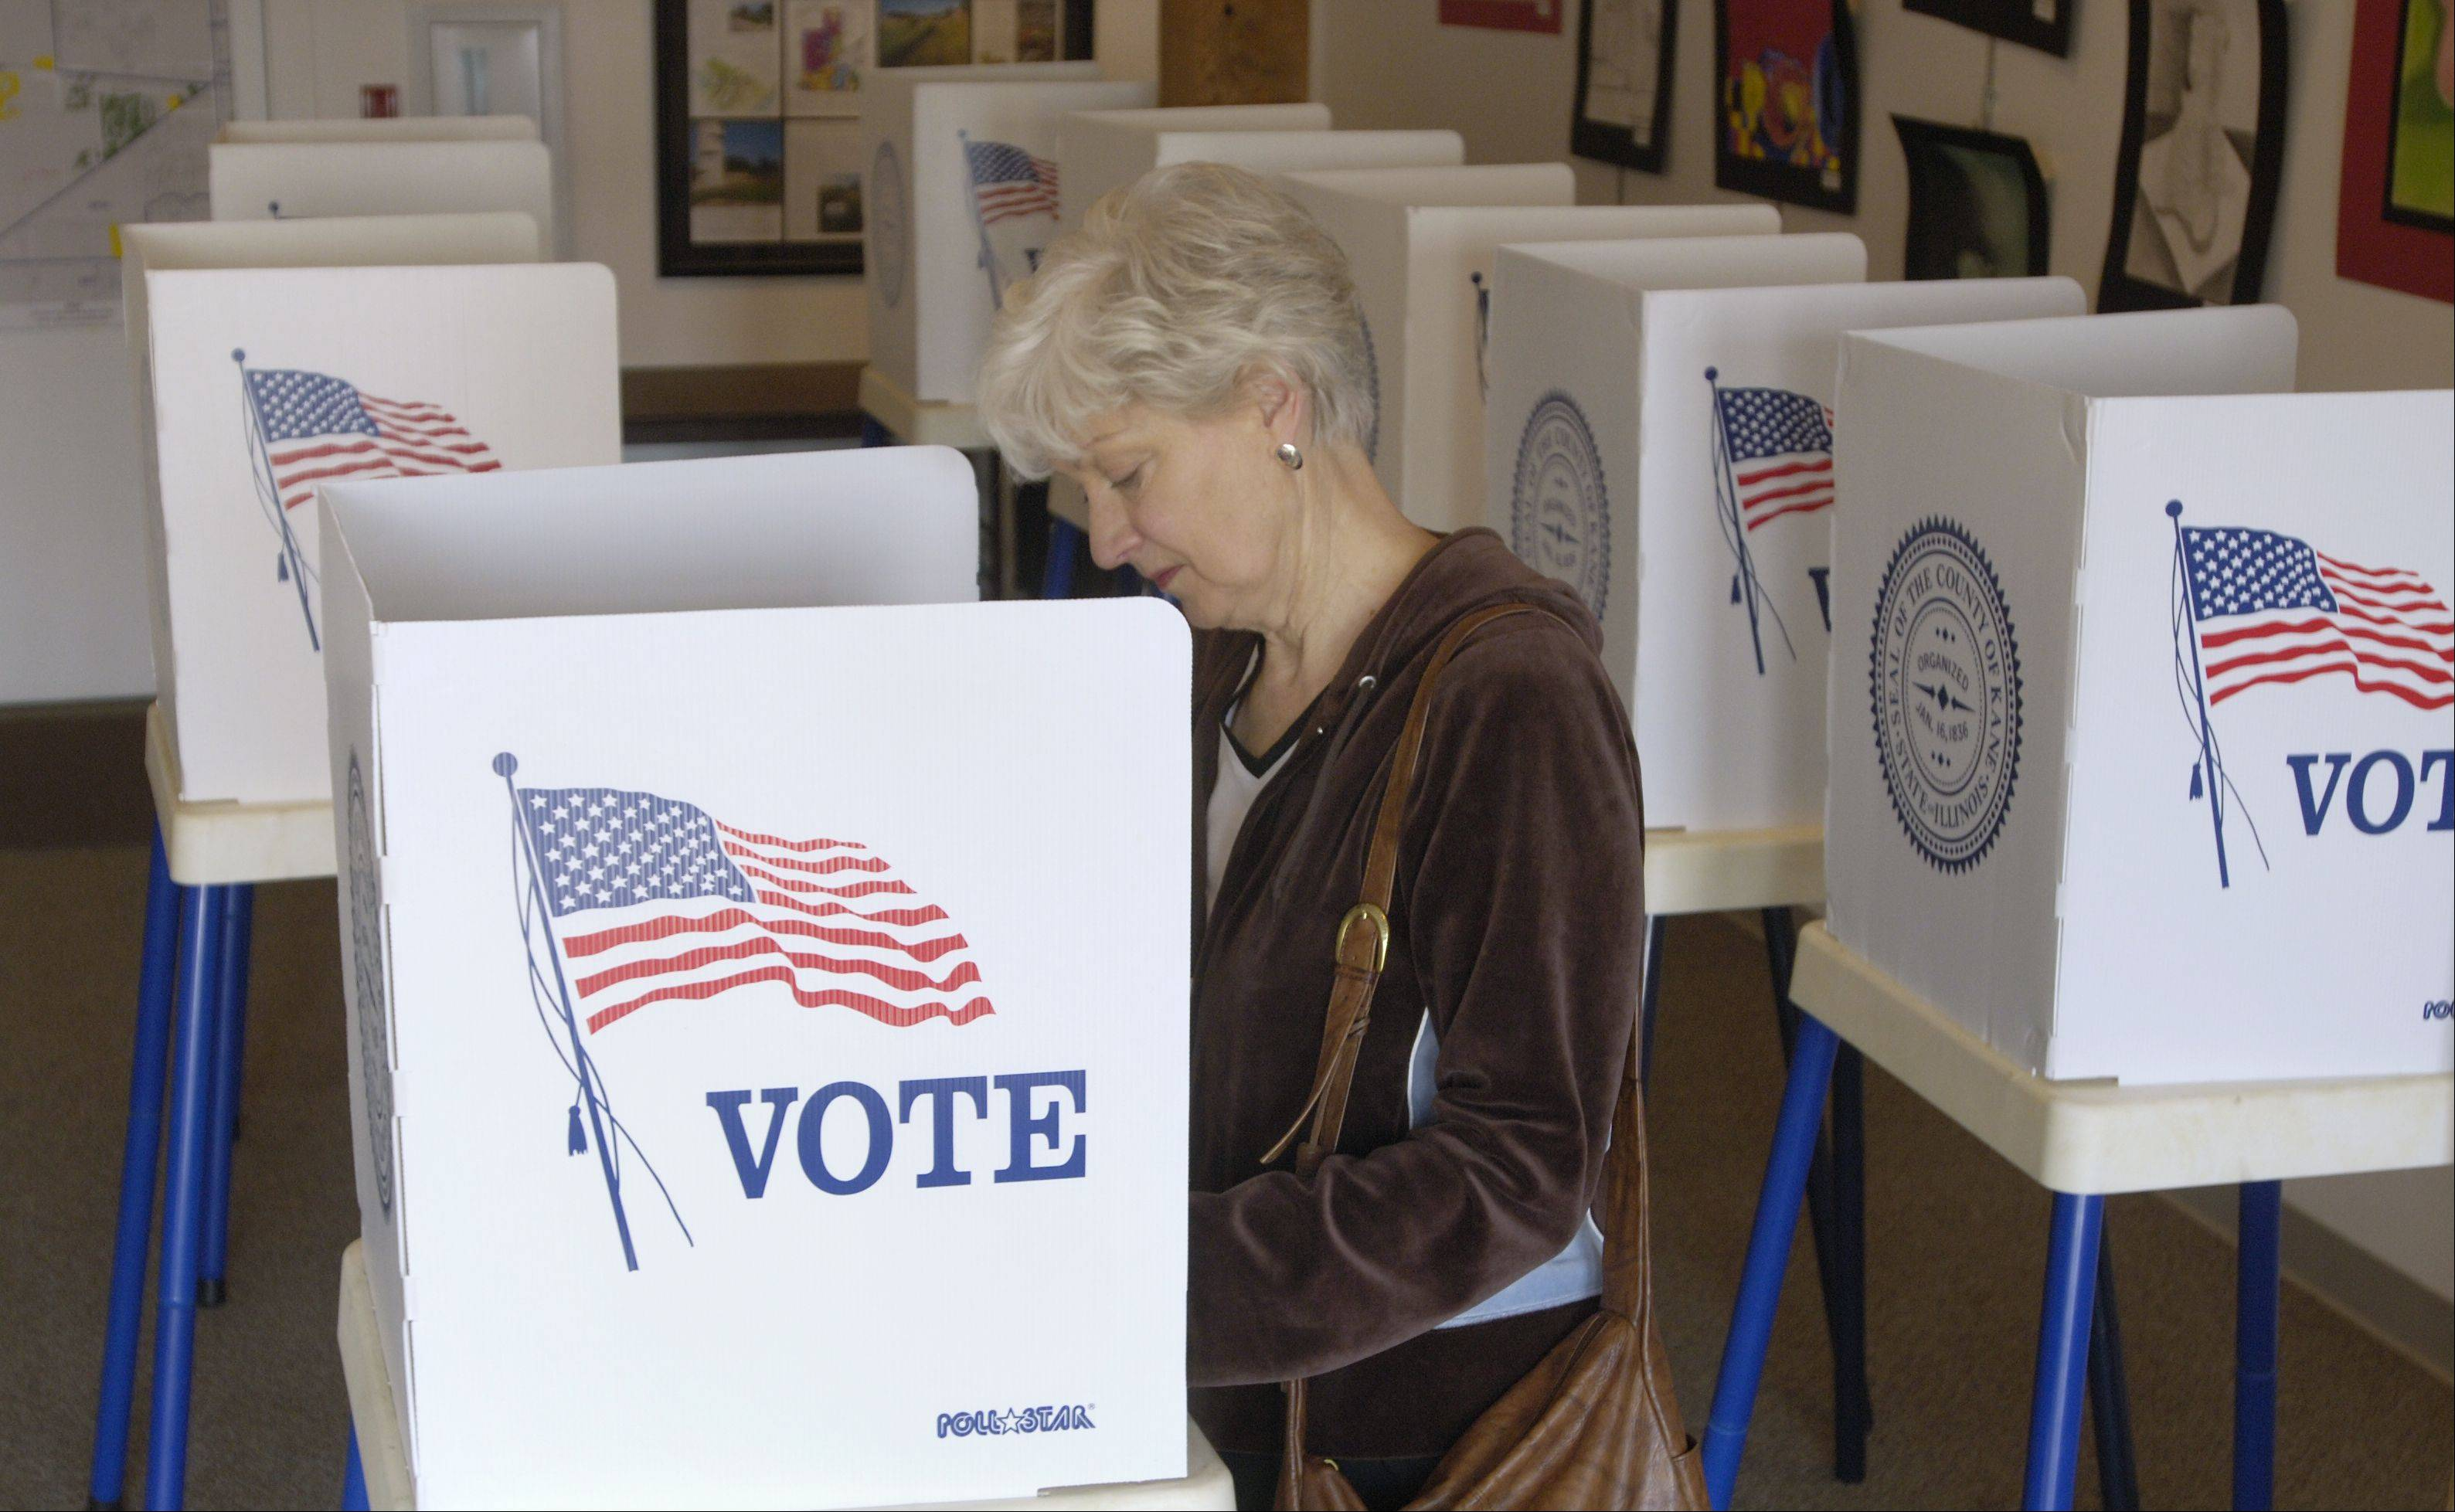 Critics complain that primary elections are being used to settle intraparty spats at a hefty cost to taxpayers while proponents argue the cost is justified to give voters the final say in who will represent the party on the final ballot.